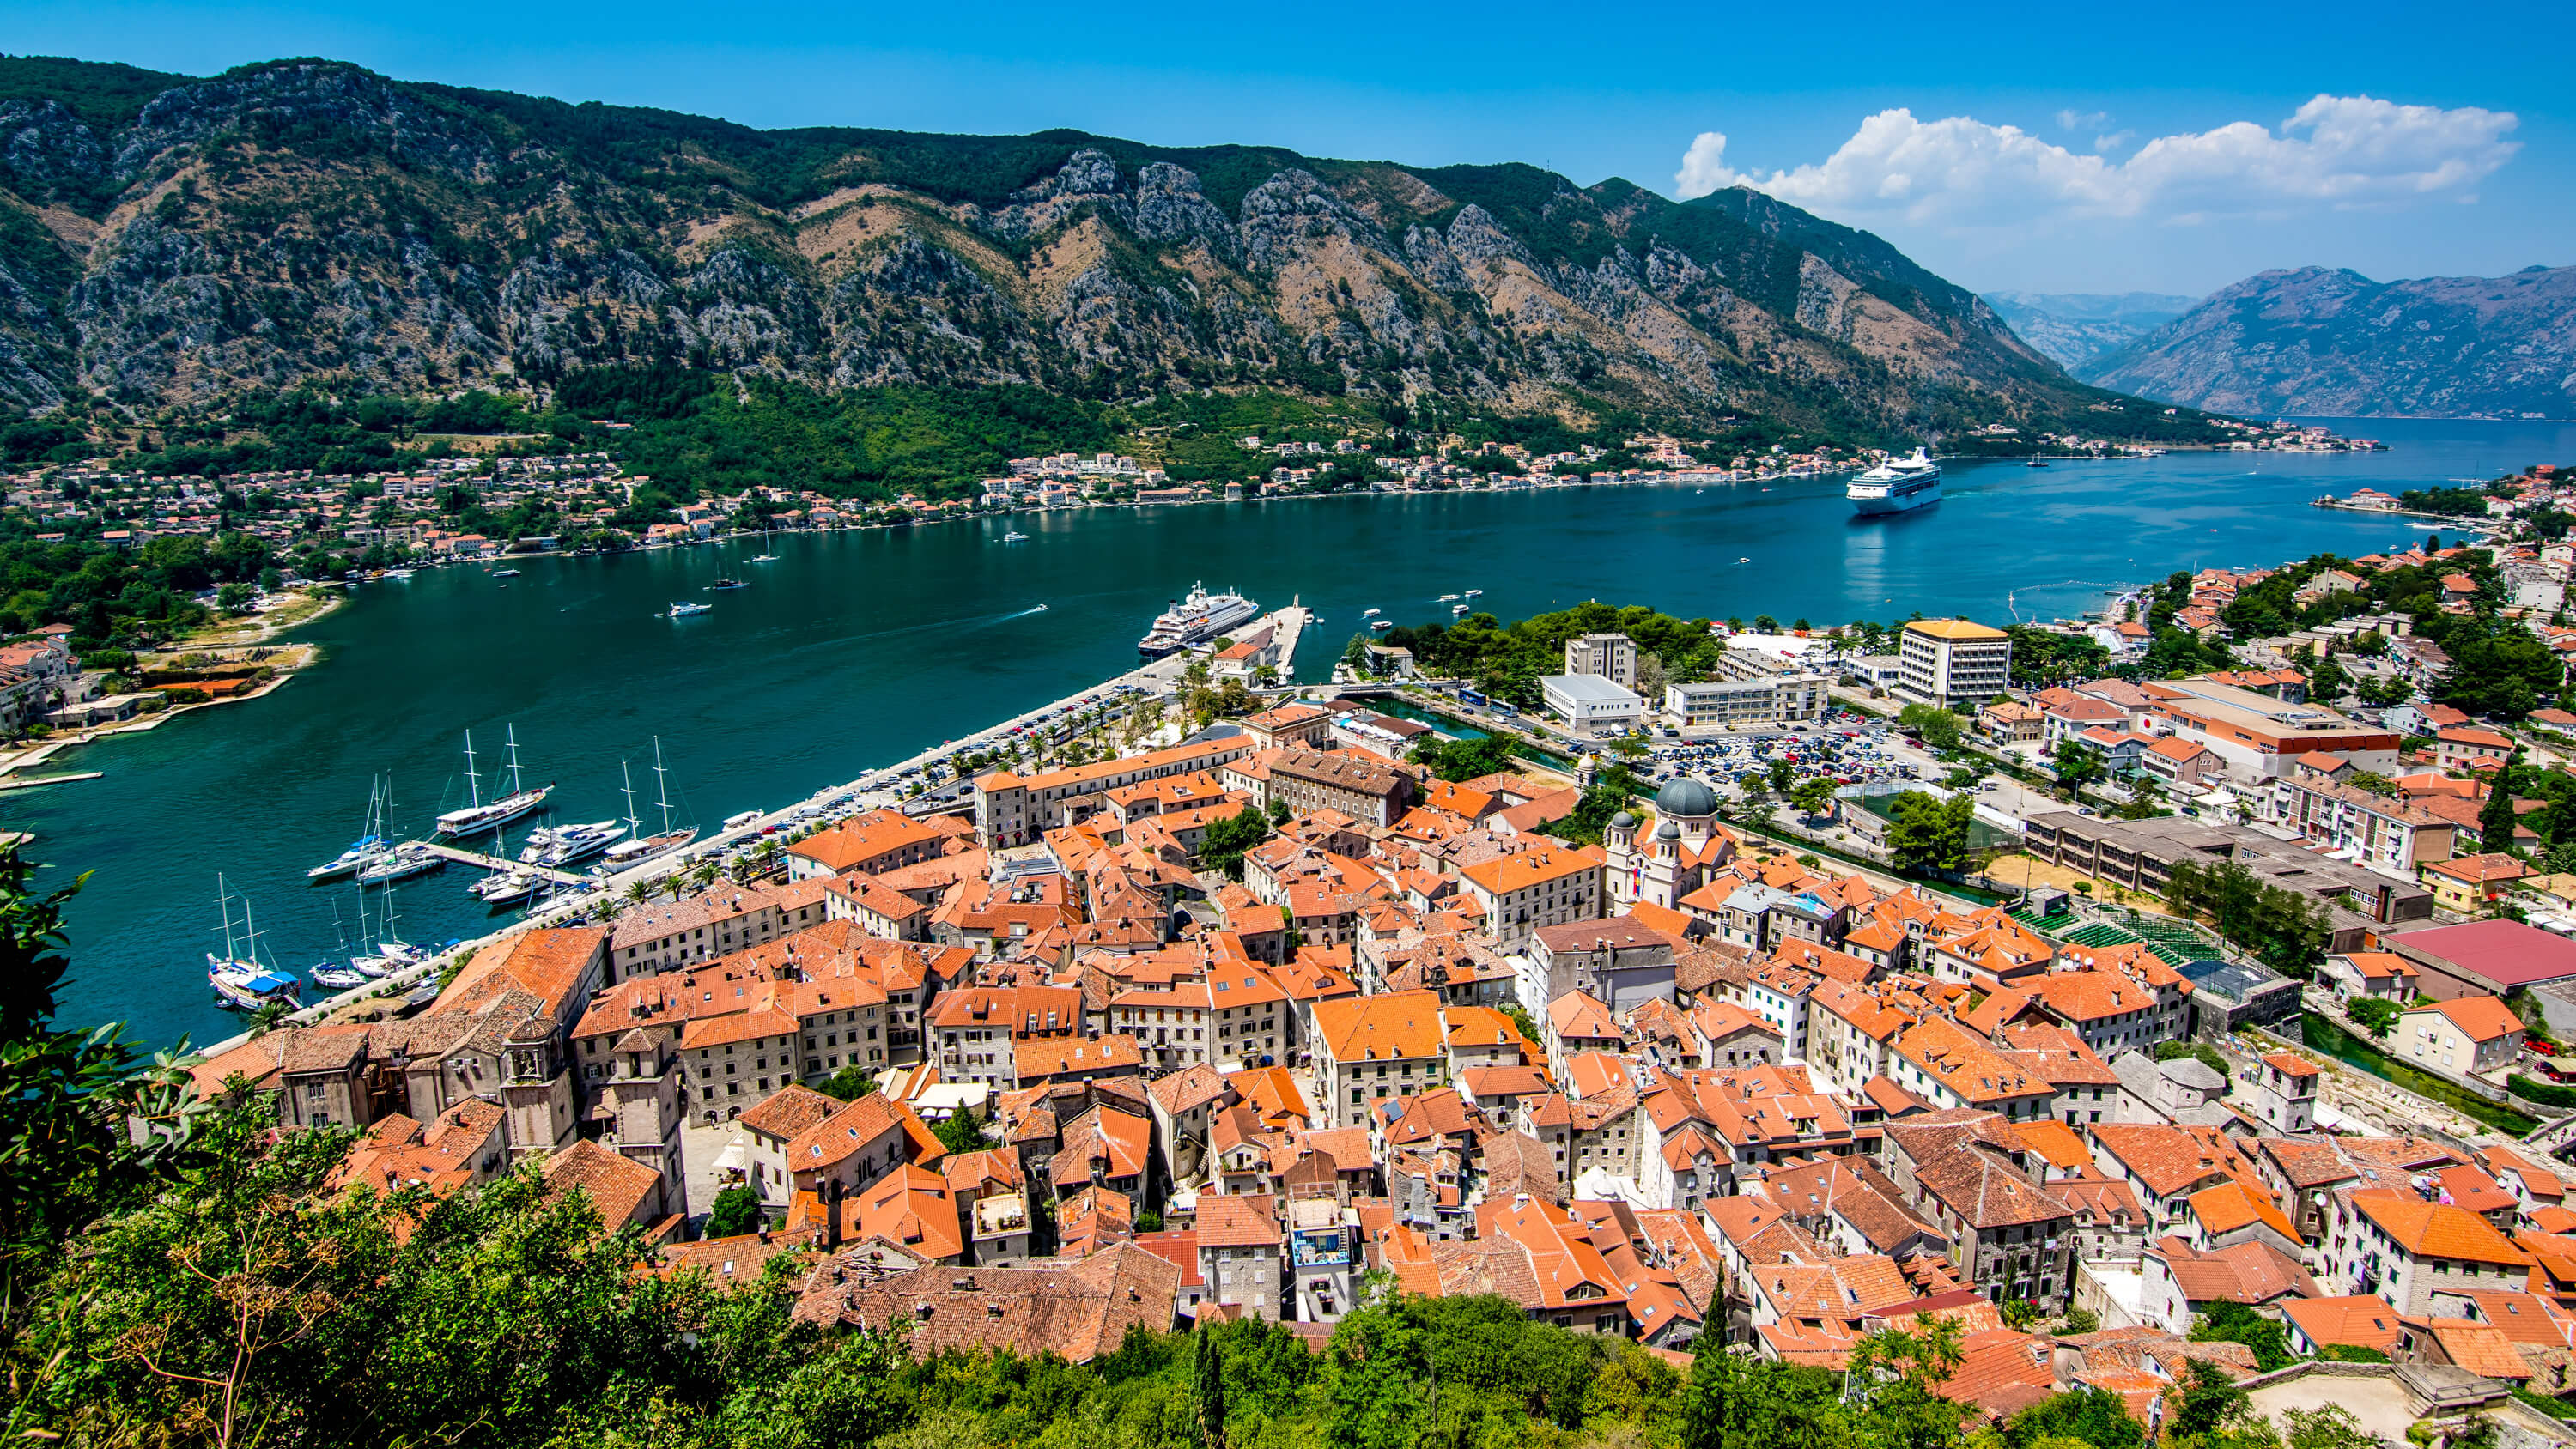 Kotor - Epic summer holiday